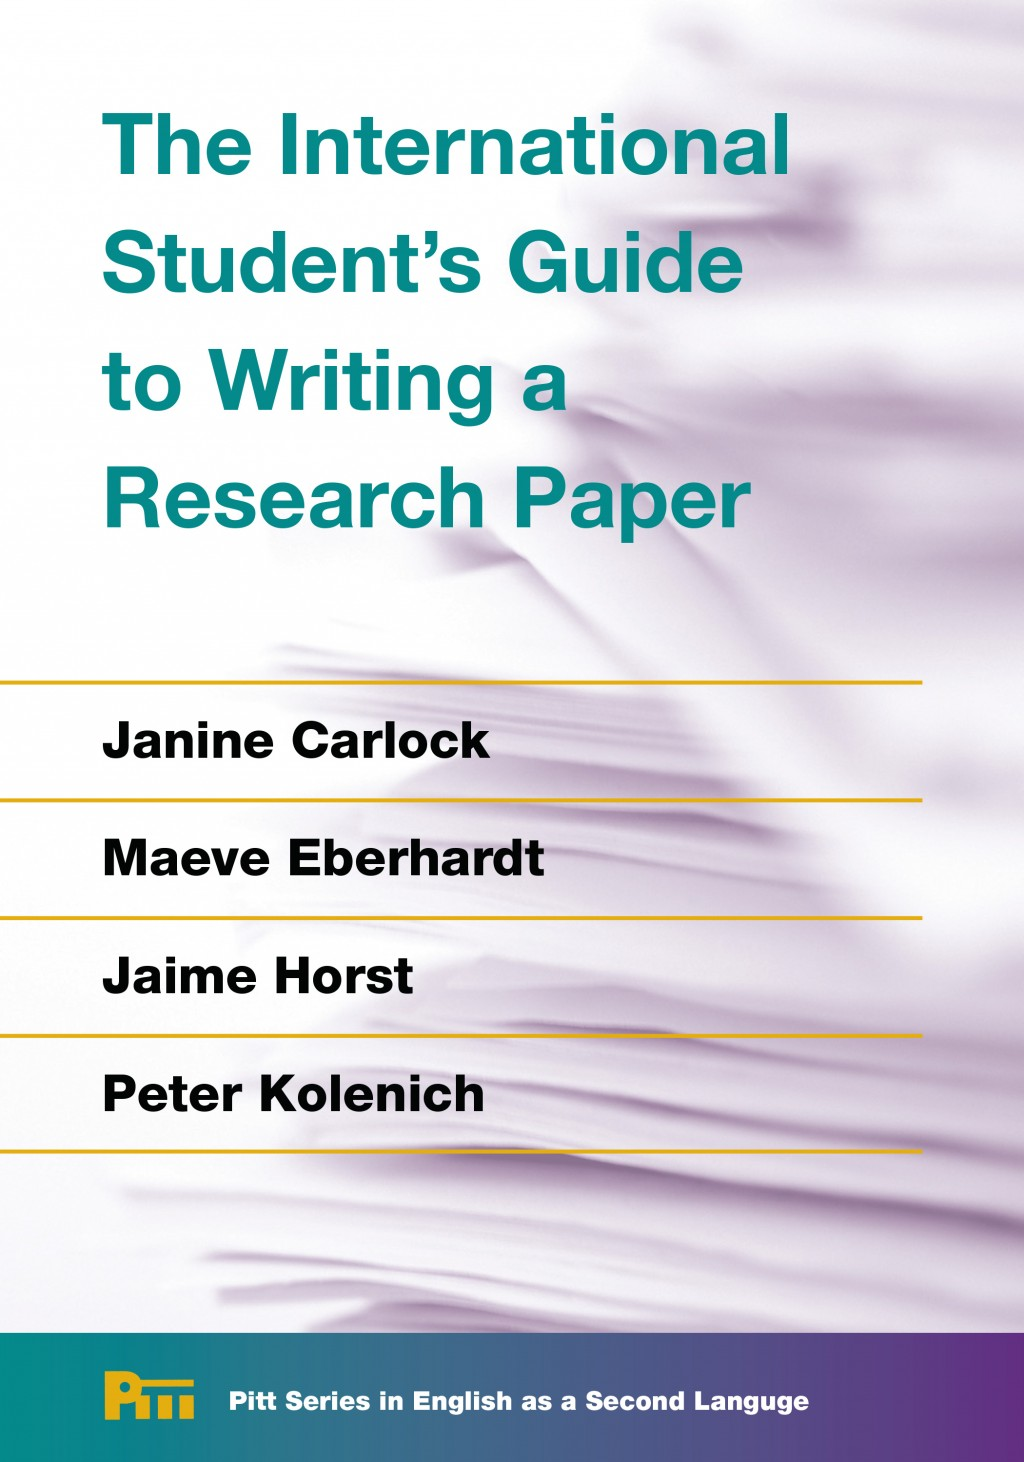 013 Writing The Research Paper Phenomenal Pdf How To Write A Outline Ppt Papers Complete Guide 16th Edition Large